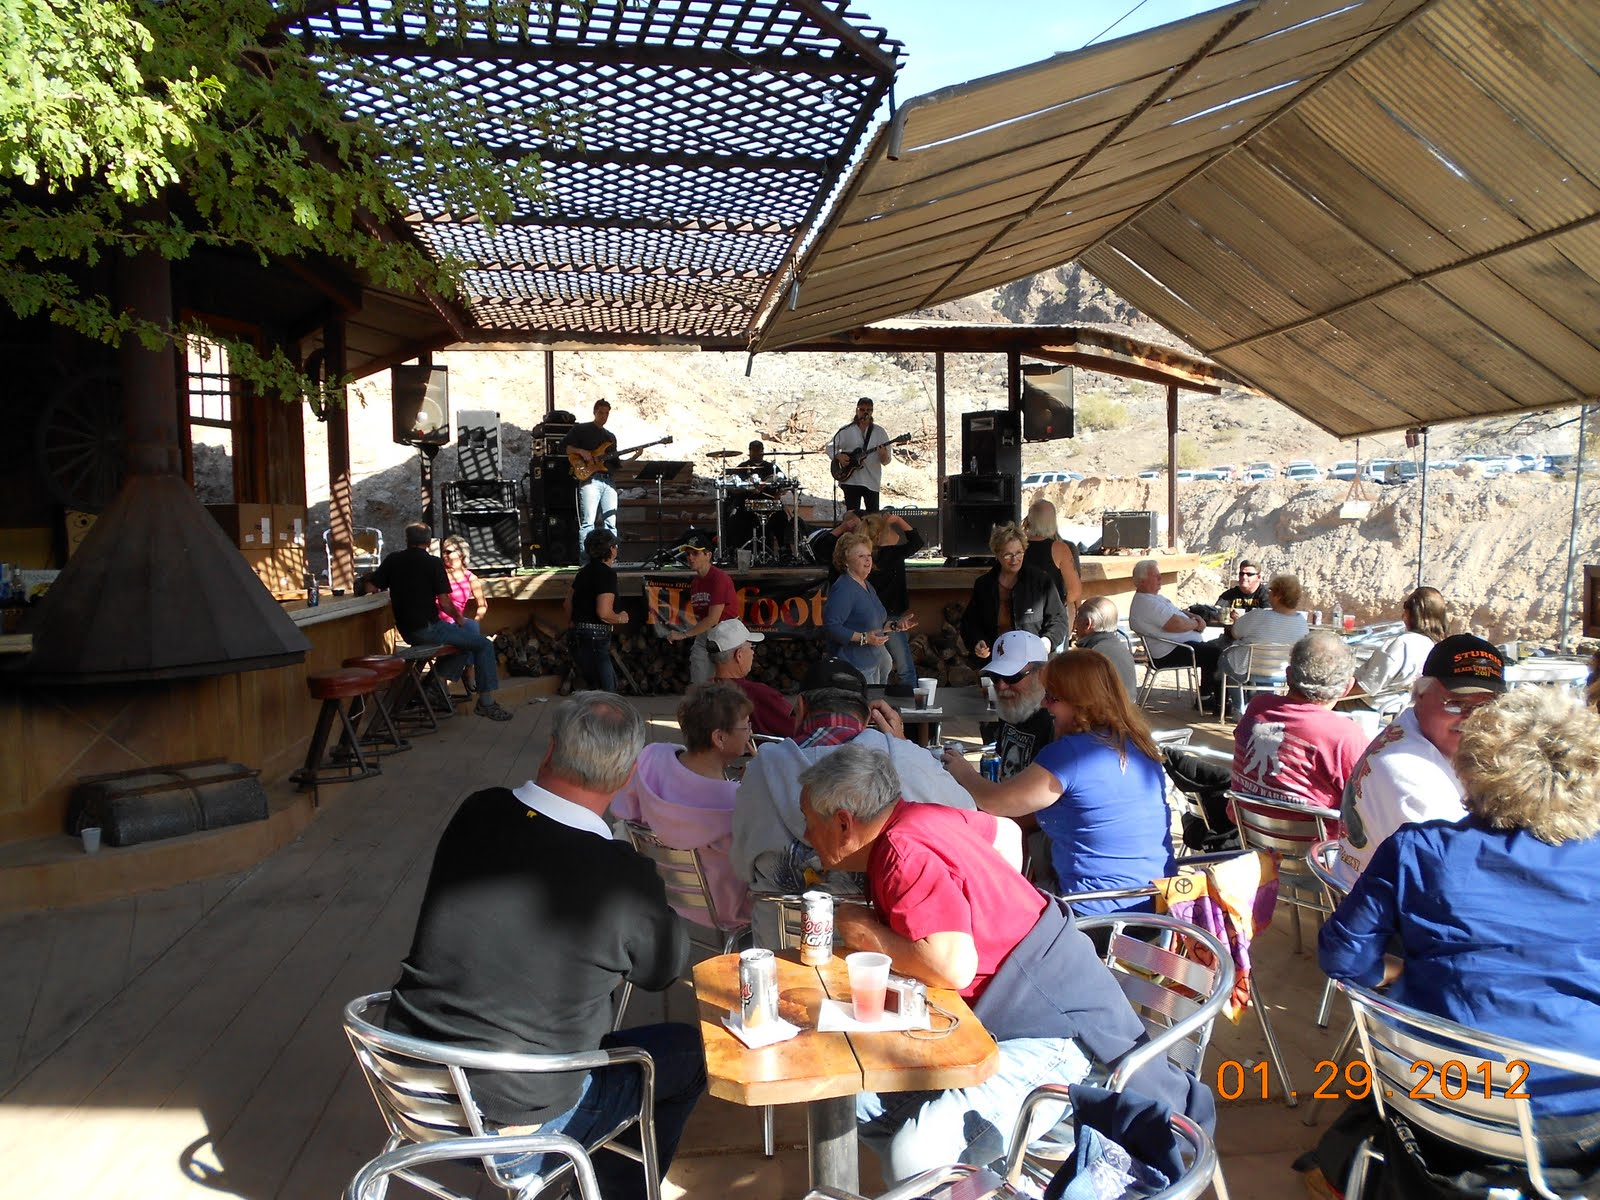 Bands at Desert Bar in Lake Havasu